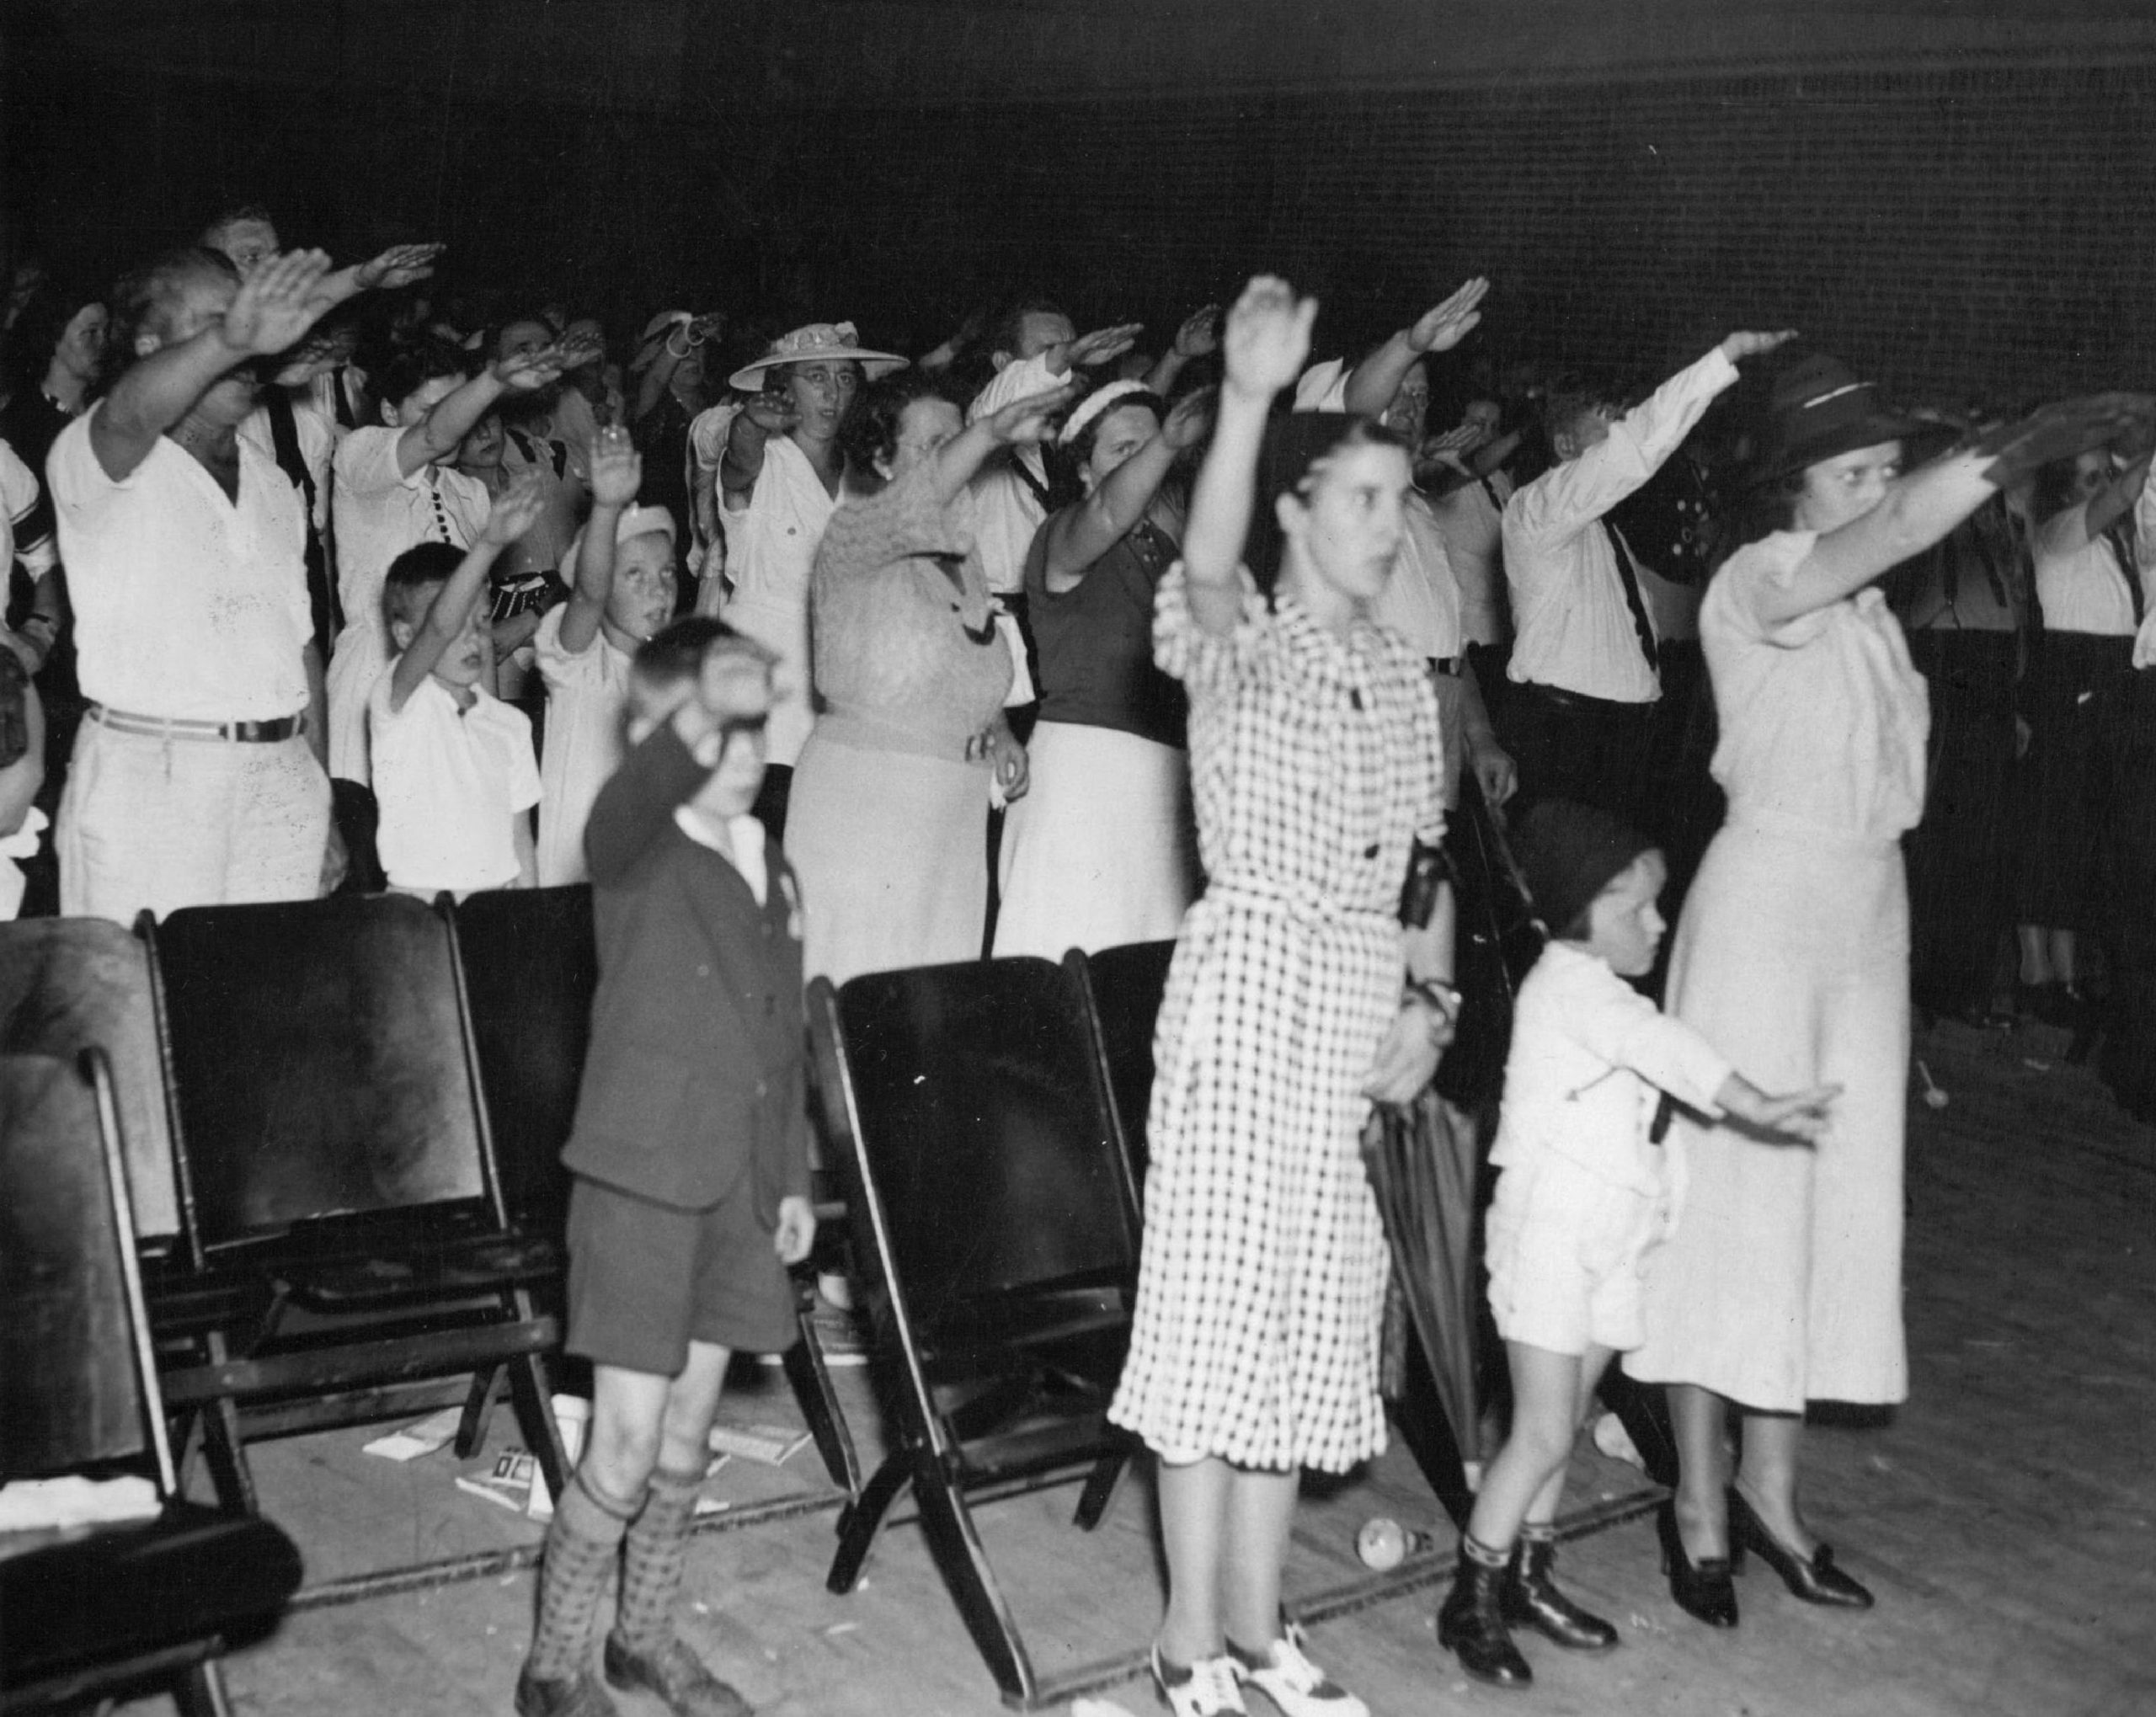 An audience gives the Hitler salute at the Bund headquarters in Kenosha, Wisconsin, in 1937.